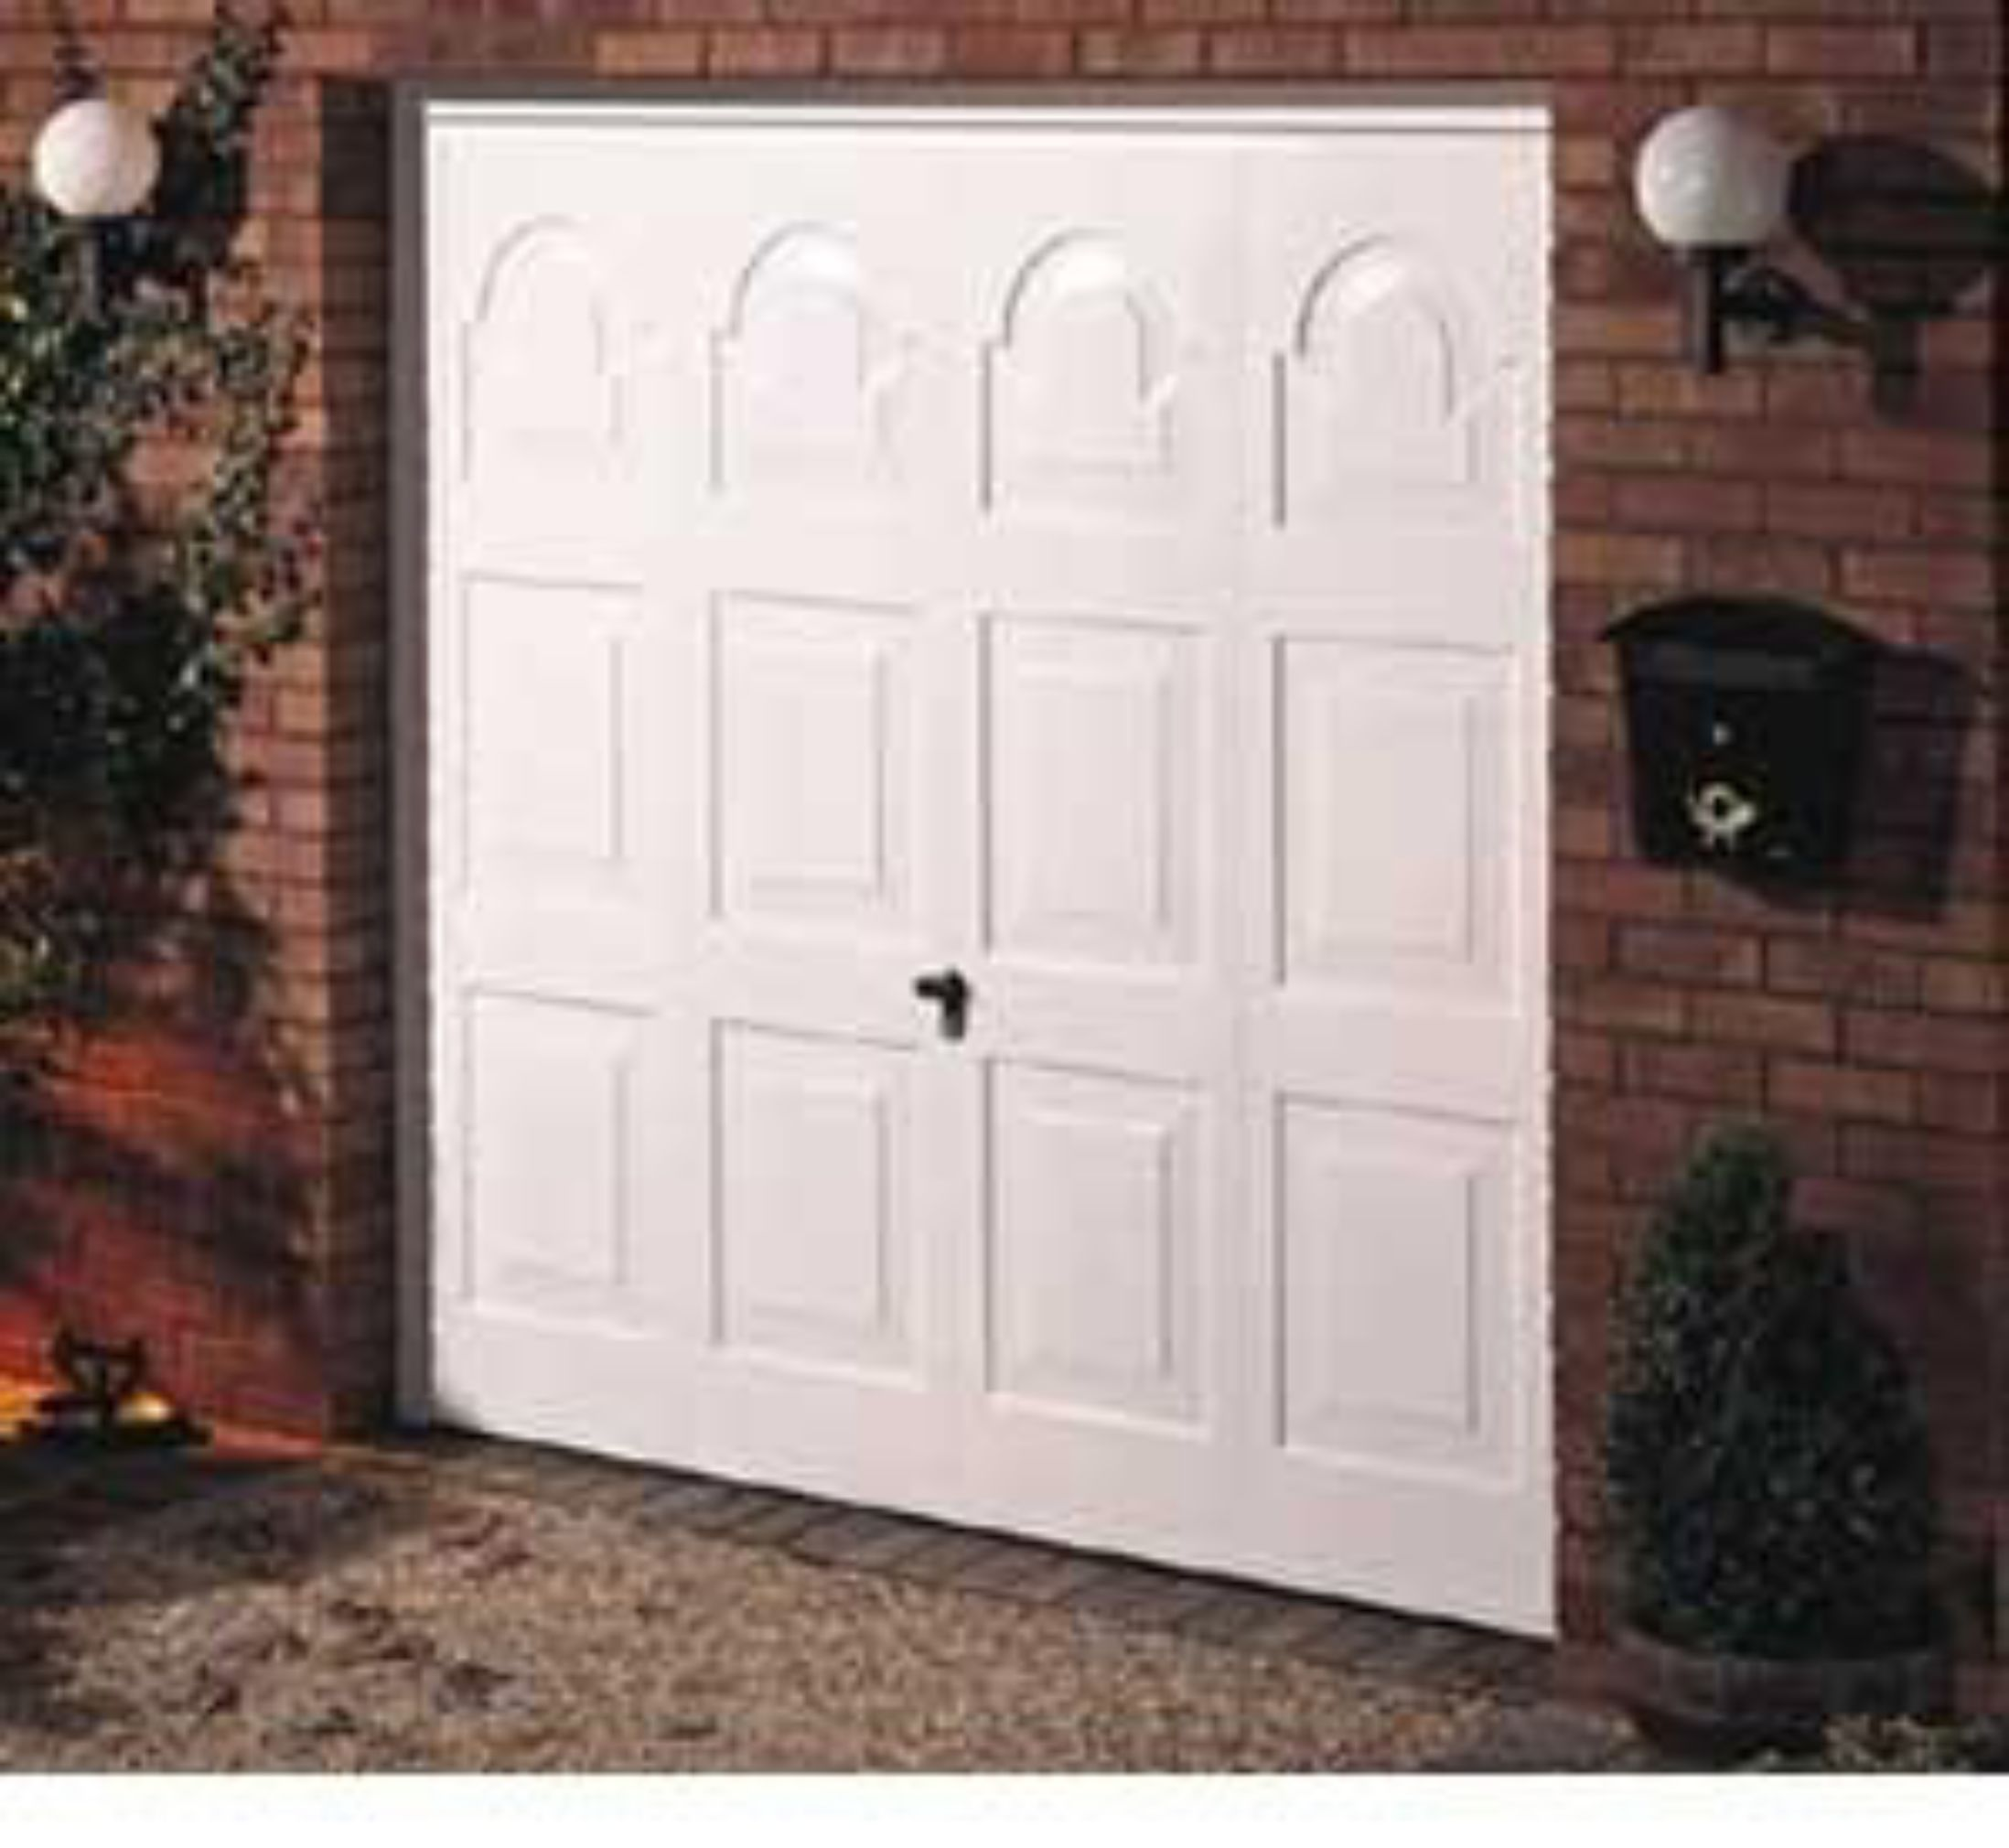 Diversity, Dedication And Dependable Doors. Iphone Garage Door Opener. Garage Door Sensor Sun Shield. Front Door Porch. Cabinet Locks For Double Doors. Oversized Garage Doors. Electric Garage Door. American Overhead Door. Garage Franchise